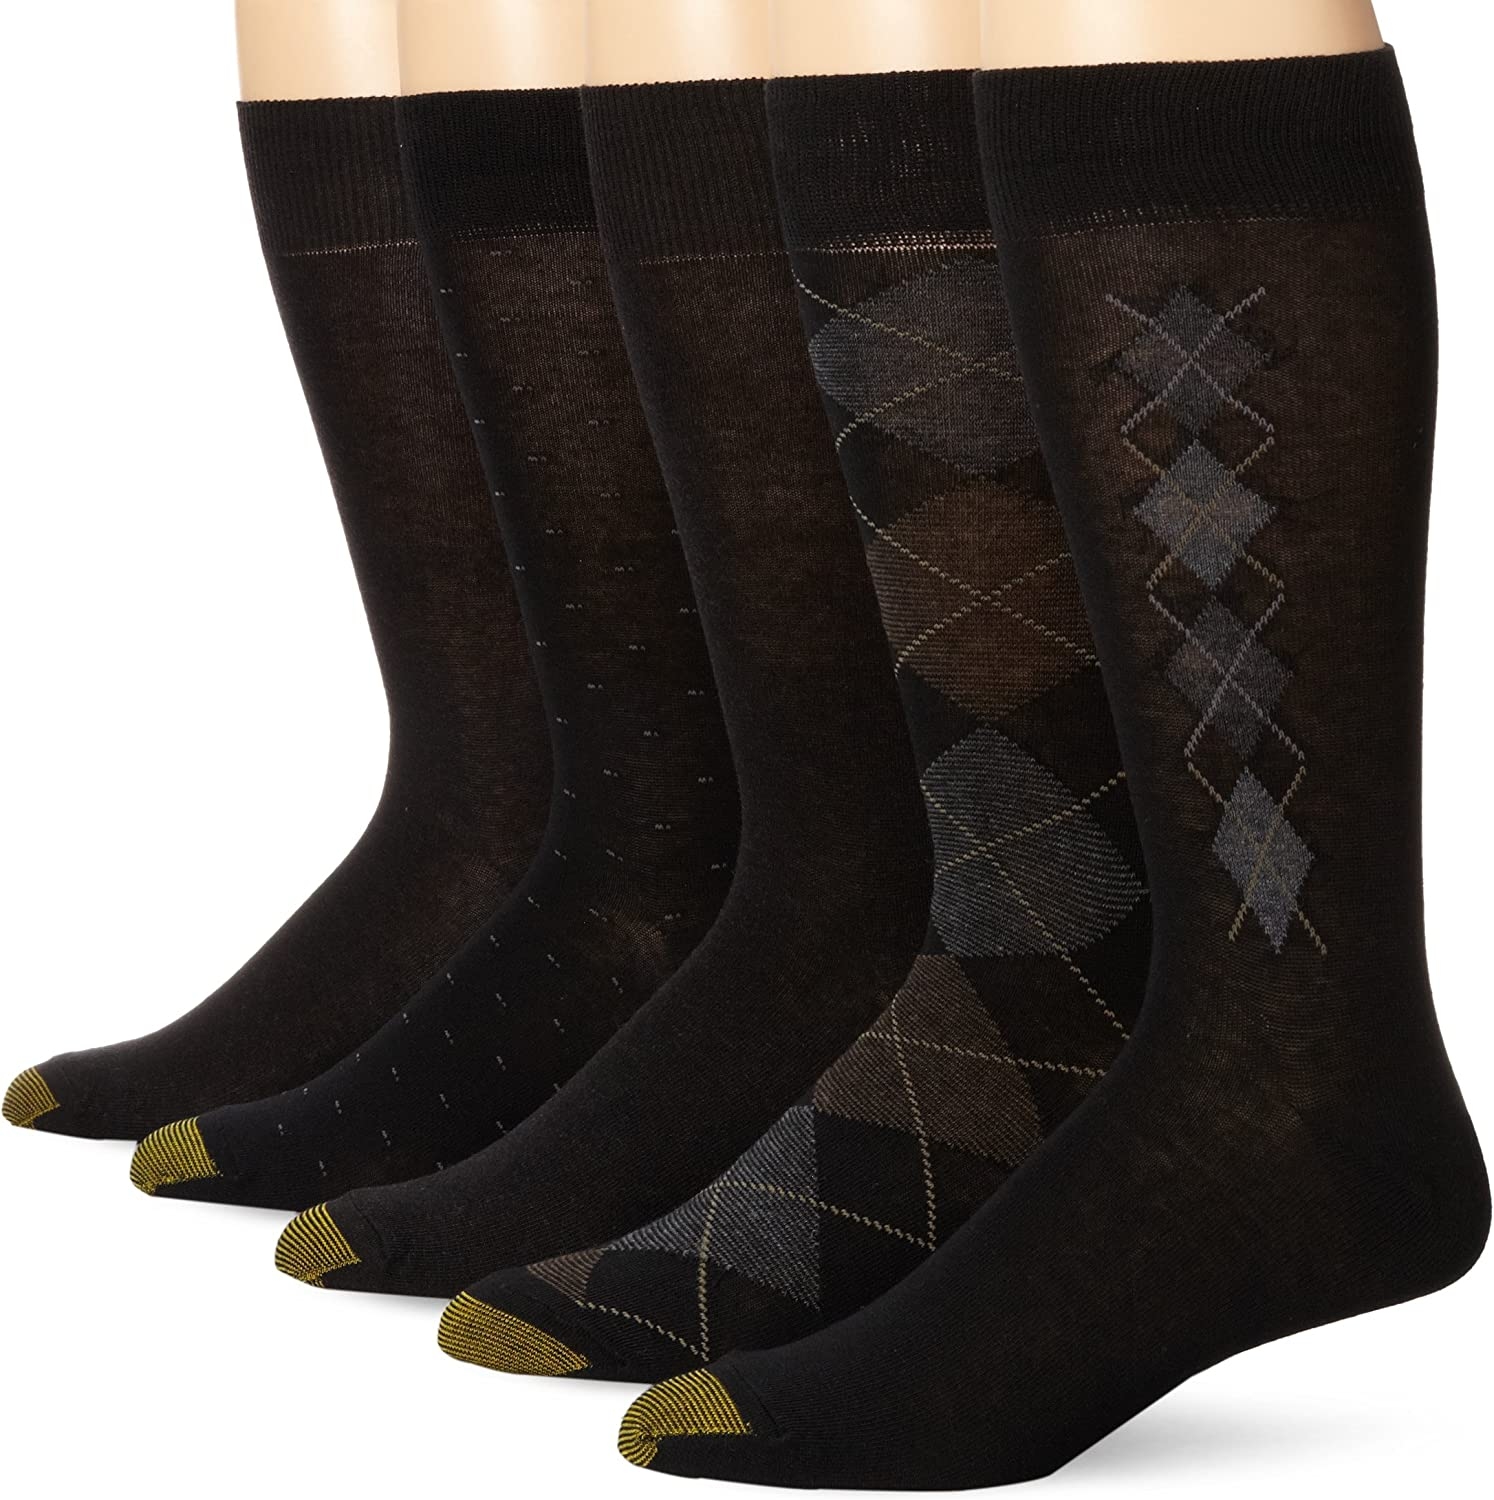 Gold Toe Men's Argyle Assorted Crew 5 Pack